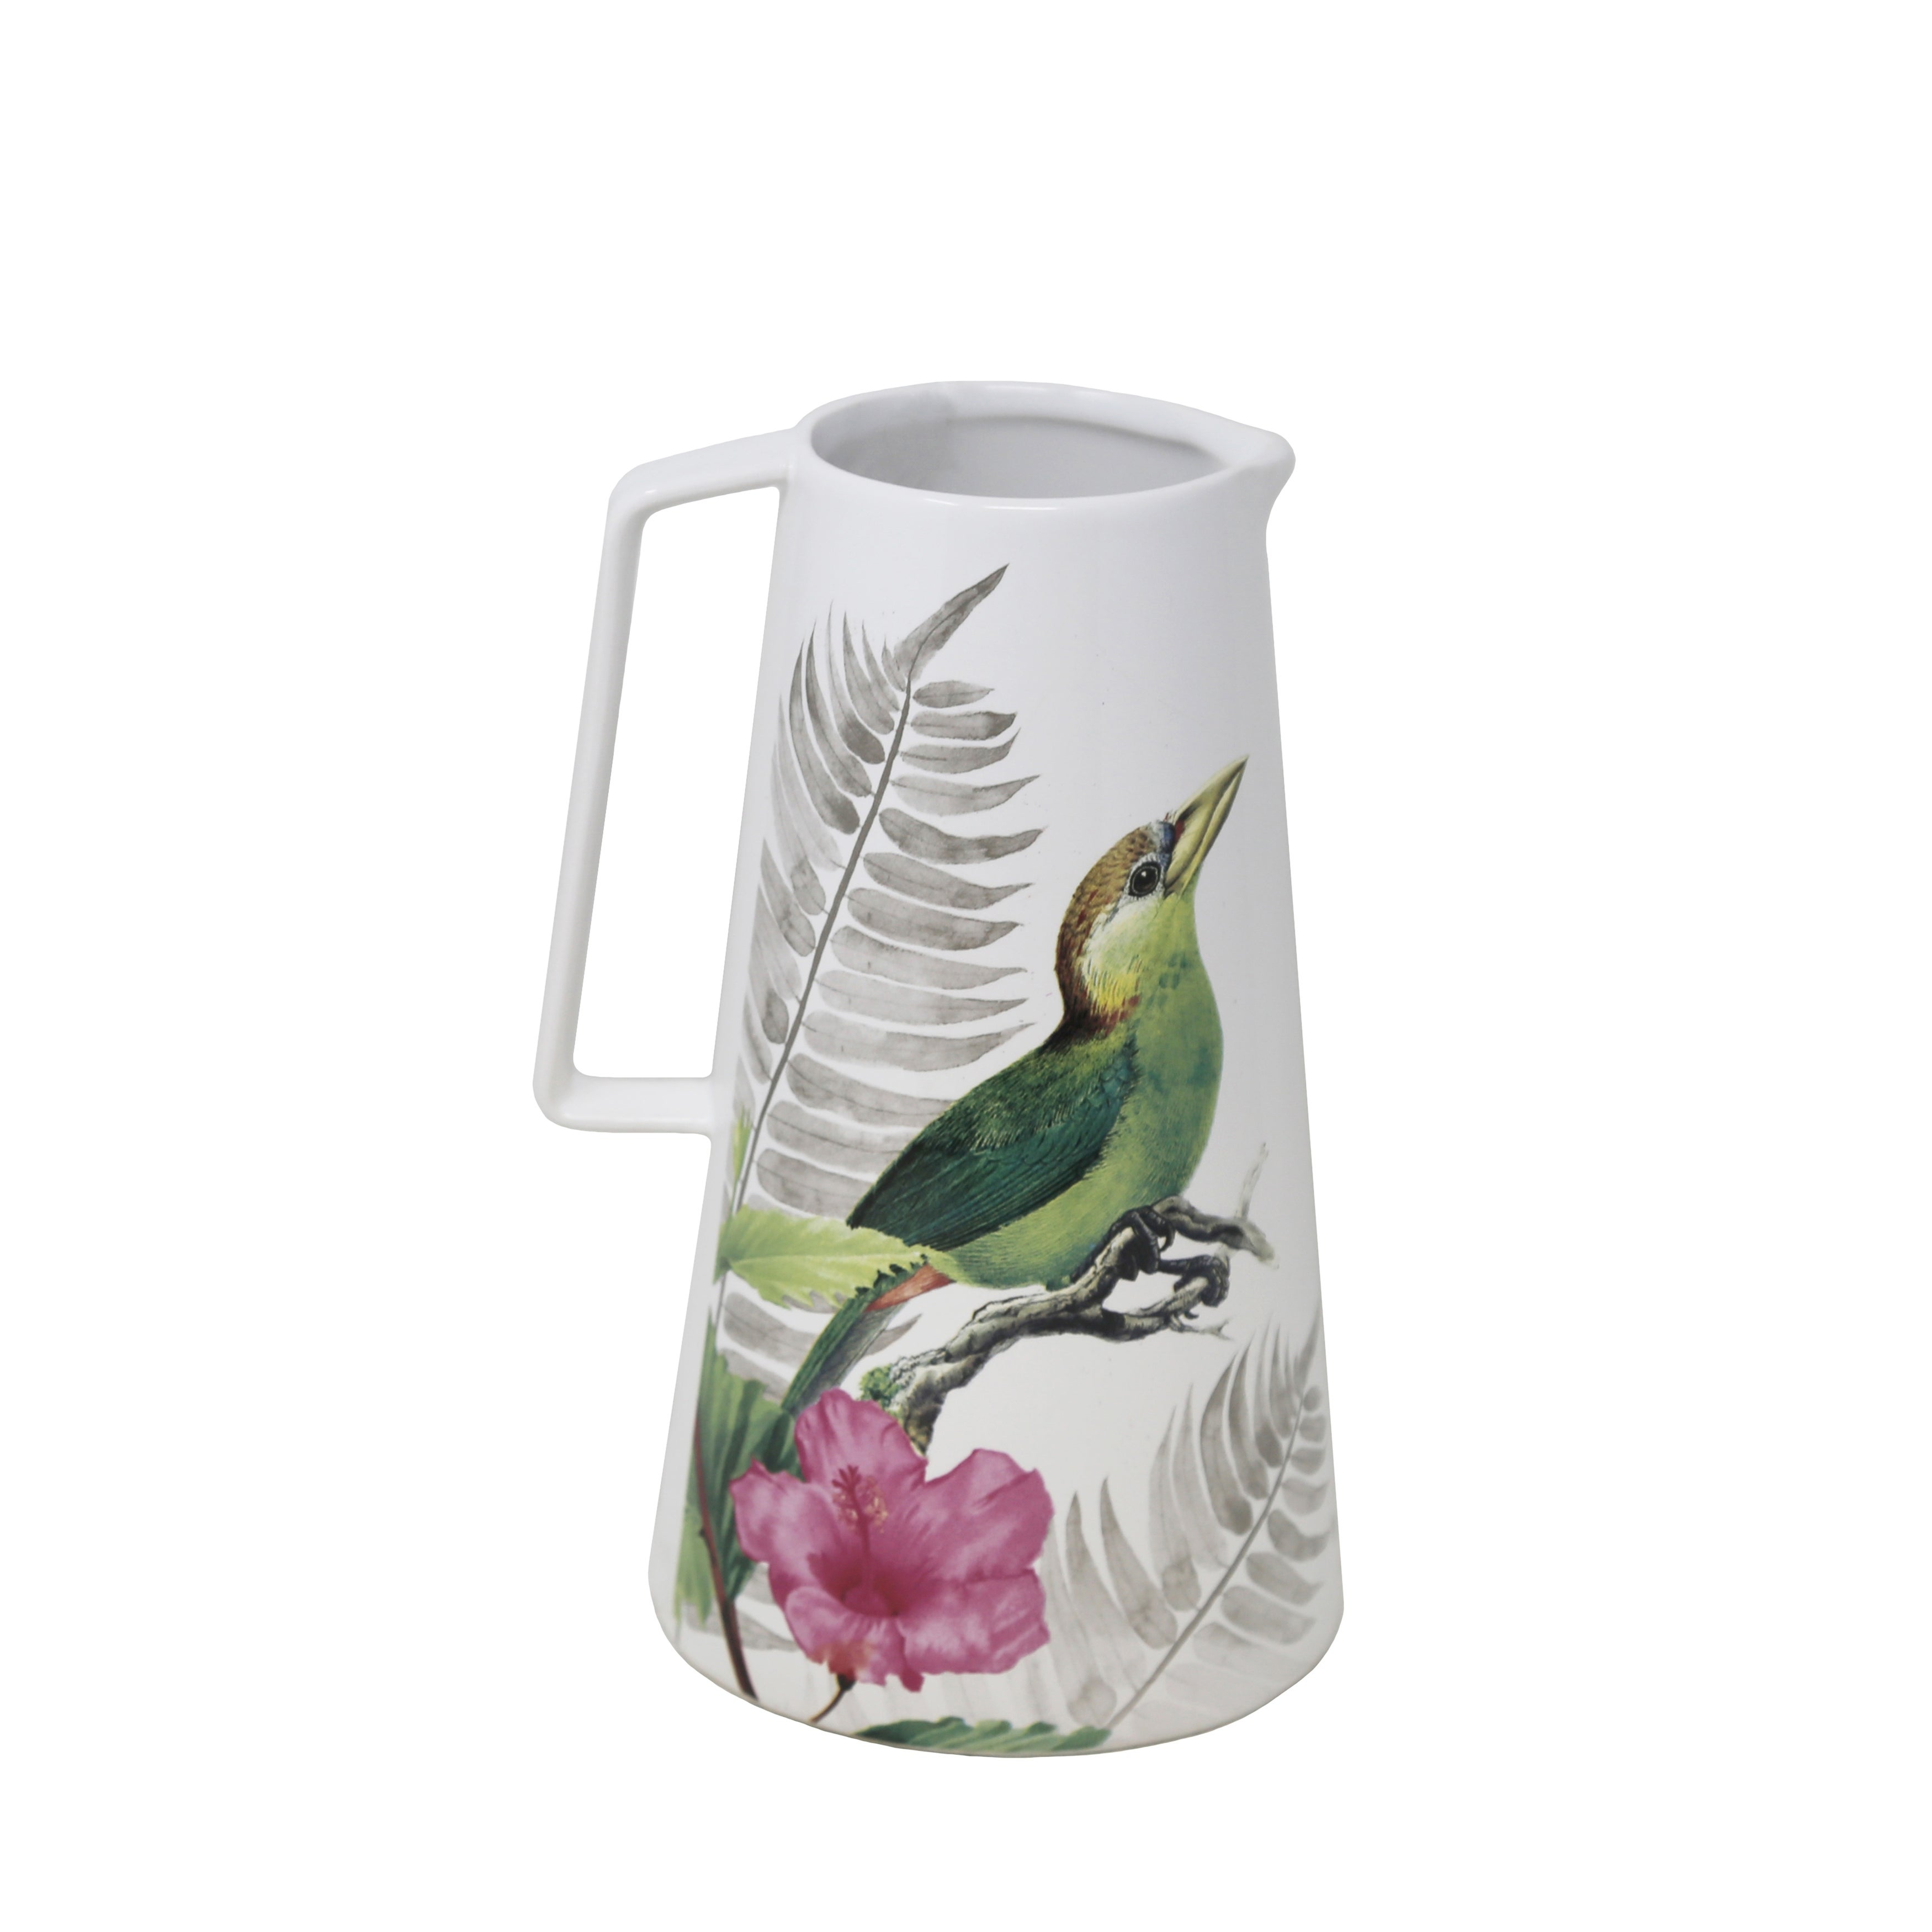 Polyresin Bird and Flower Printed Pitcher Vase with Small Mouth Opening, Multicolor